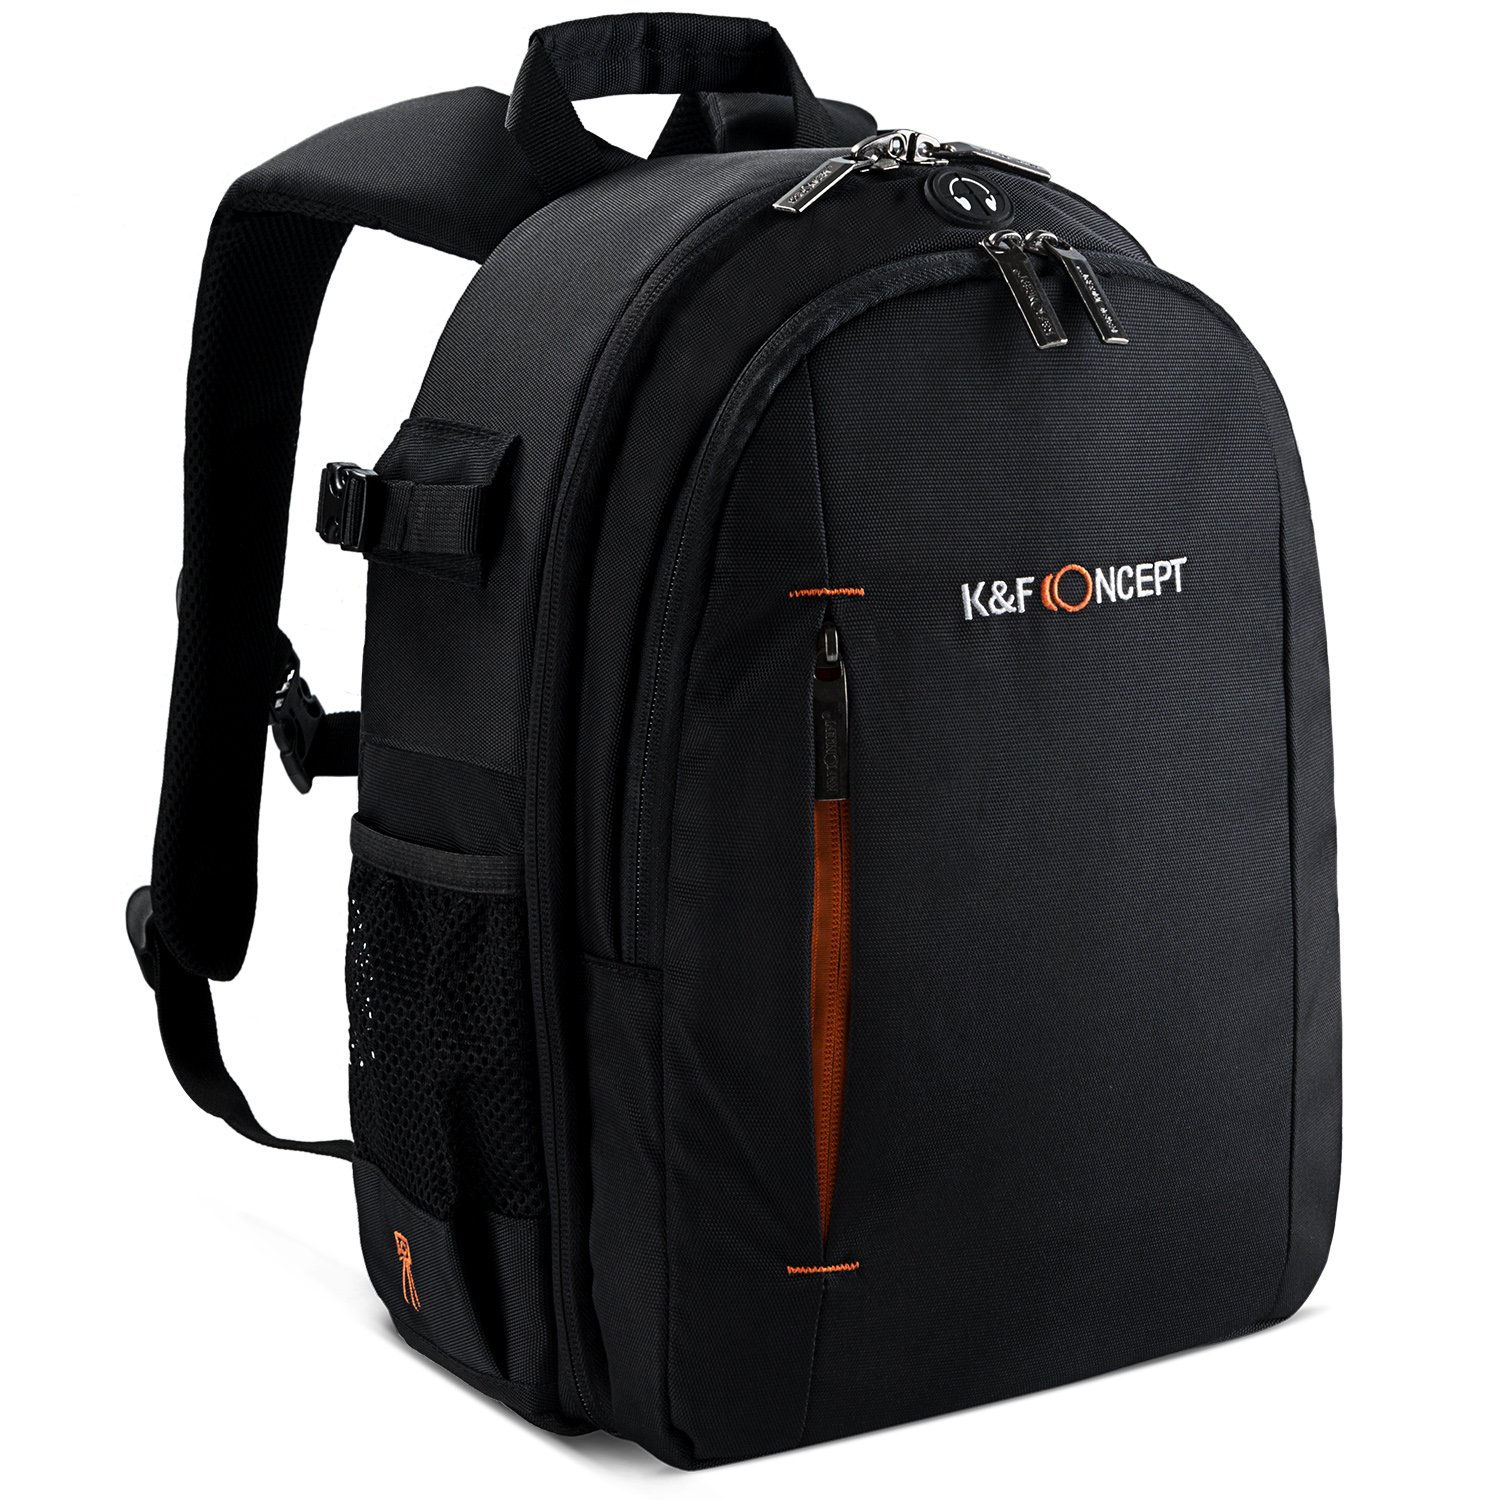 K&F Concept Professional Camera Backpack for SLR/DSLR Mirrorless Cameras (Canon Nikon Sony Pentax),Lenses, Tripod, 10'' iPad and Photography Accessories with Rain Cover by K&F Concept